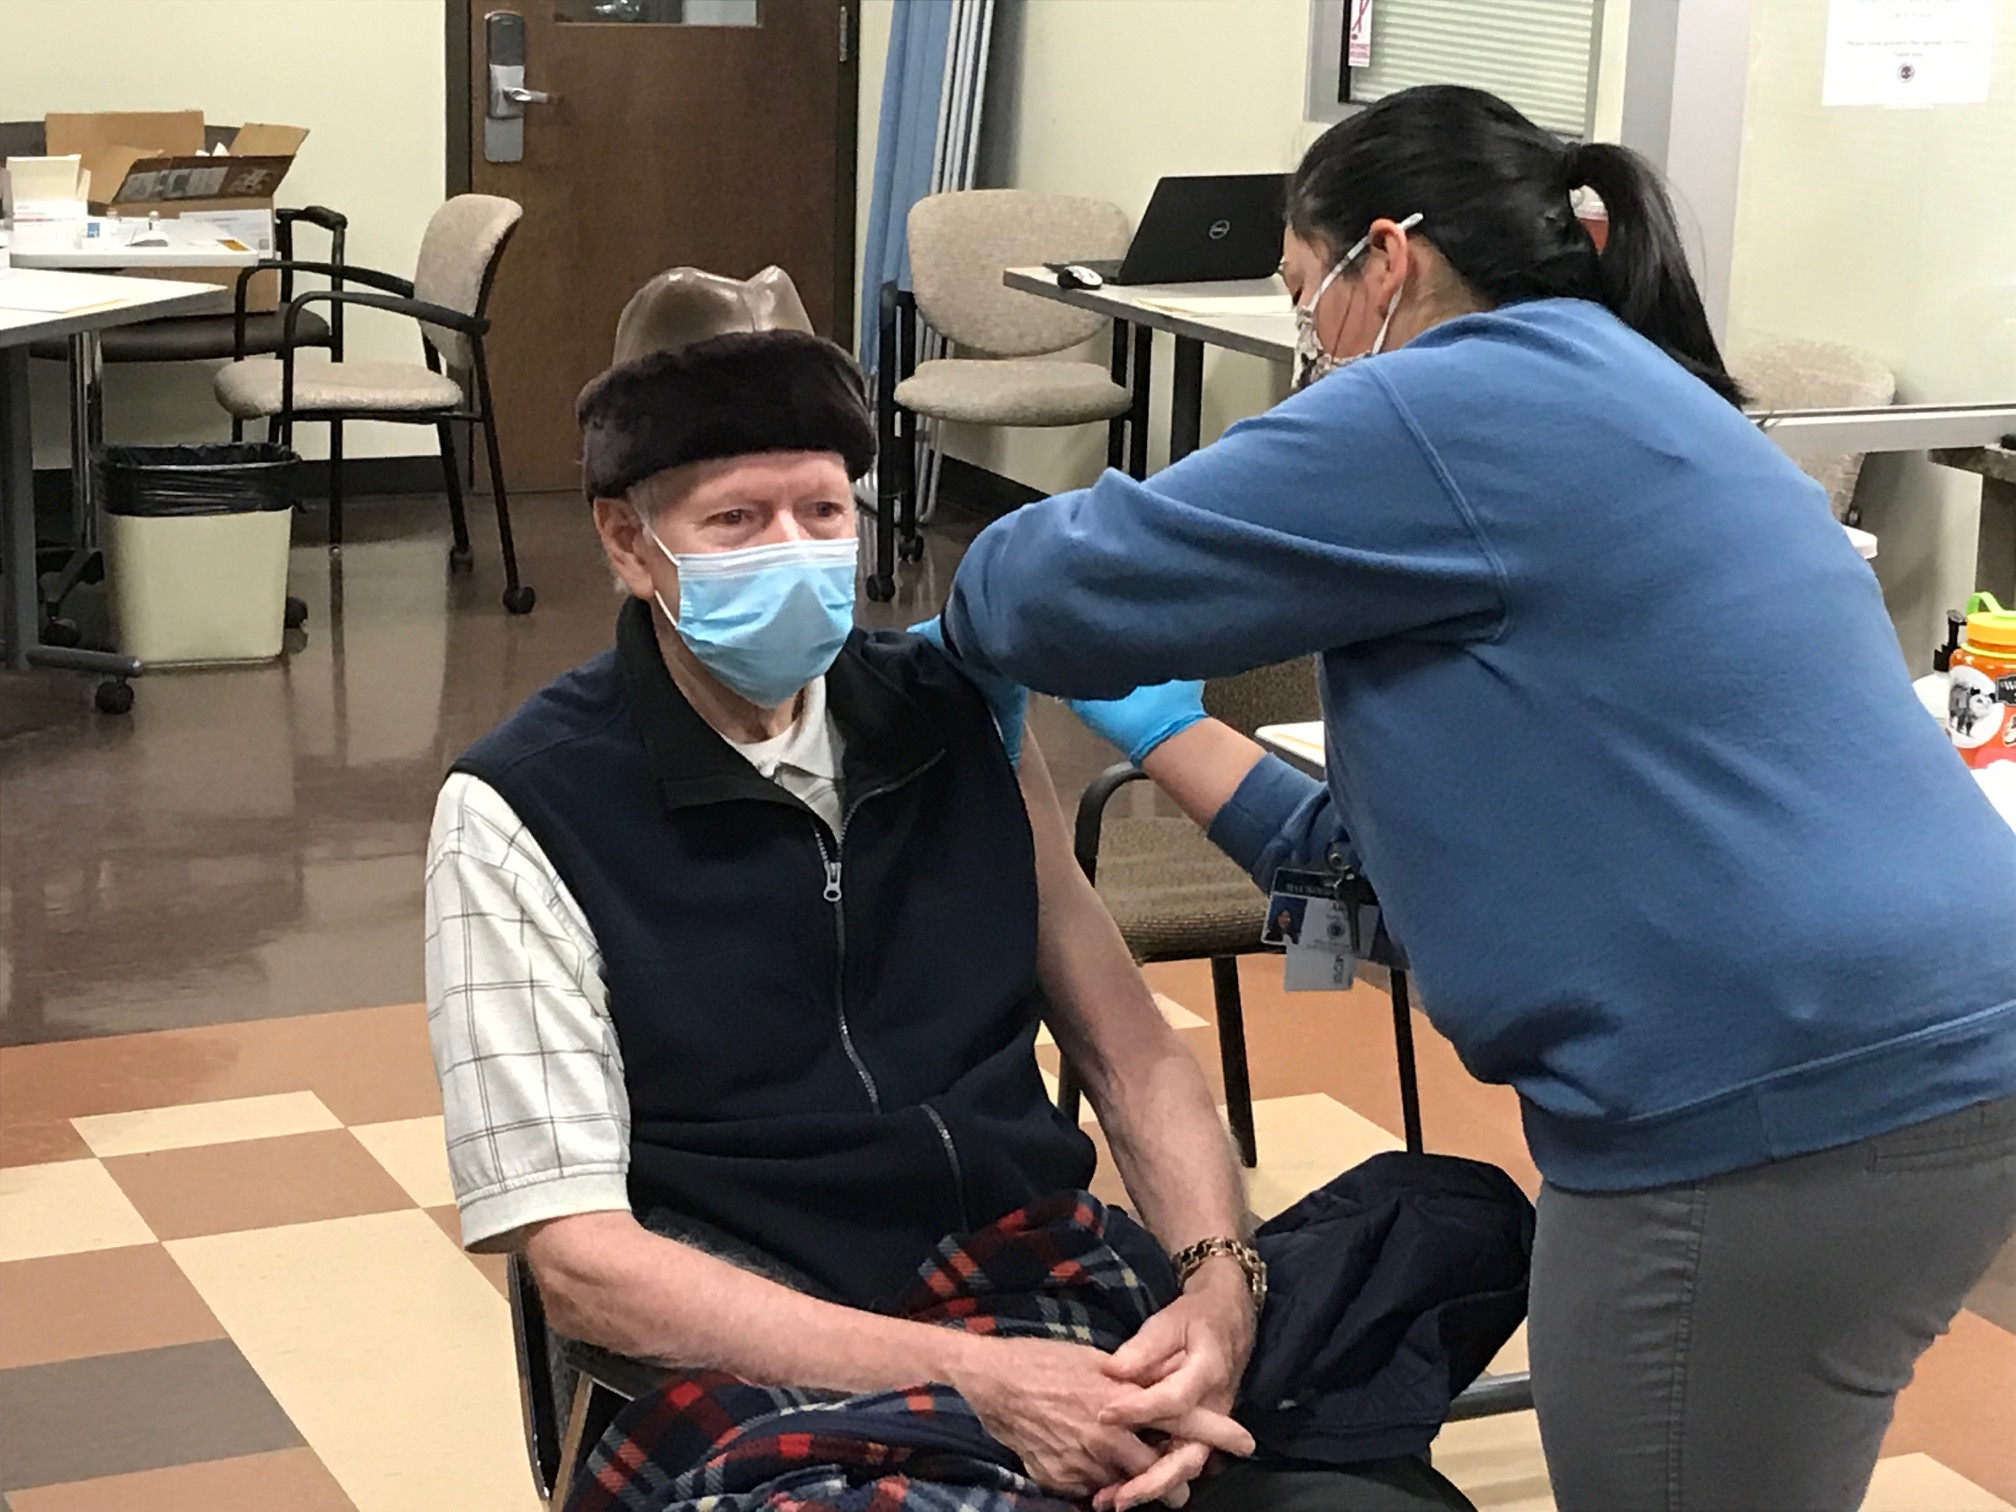 Norman Long, a Haywood County man who taught at Pisgah High from the day it opened until his retirement, received his first dose of the COVID-19 vaccine. (Photo credit: WLOS)